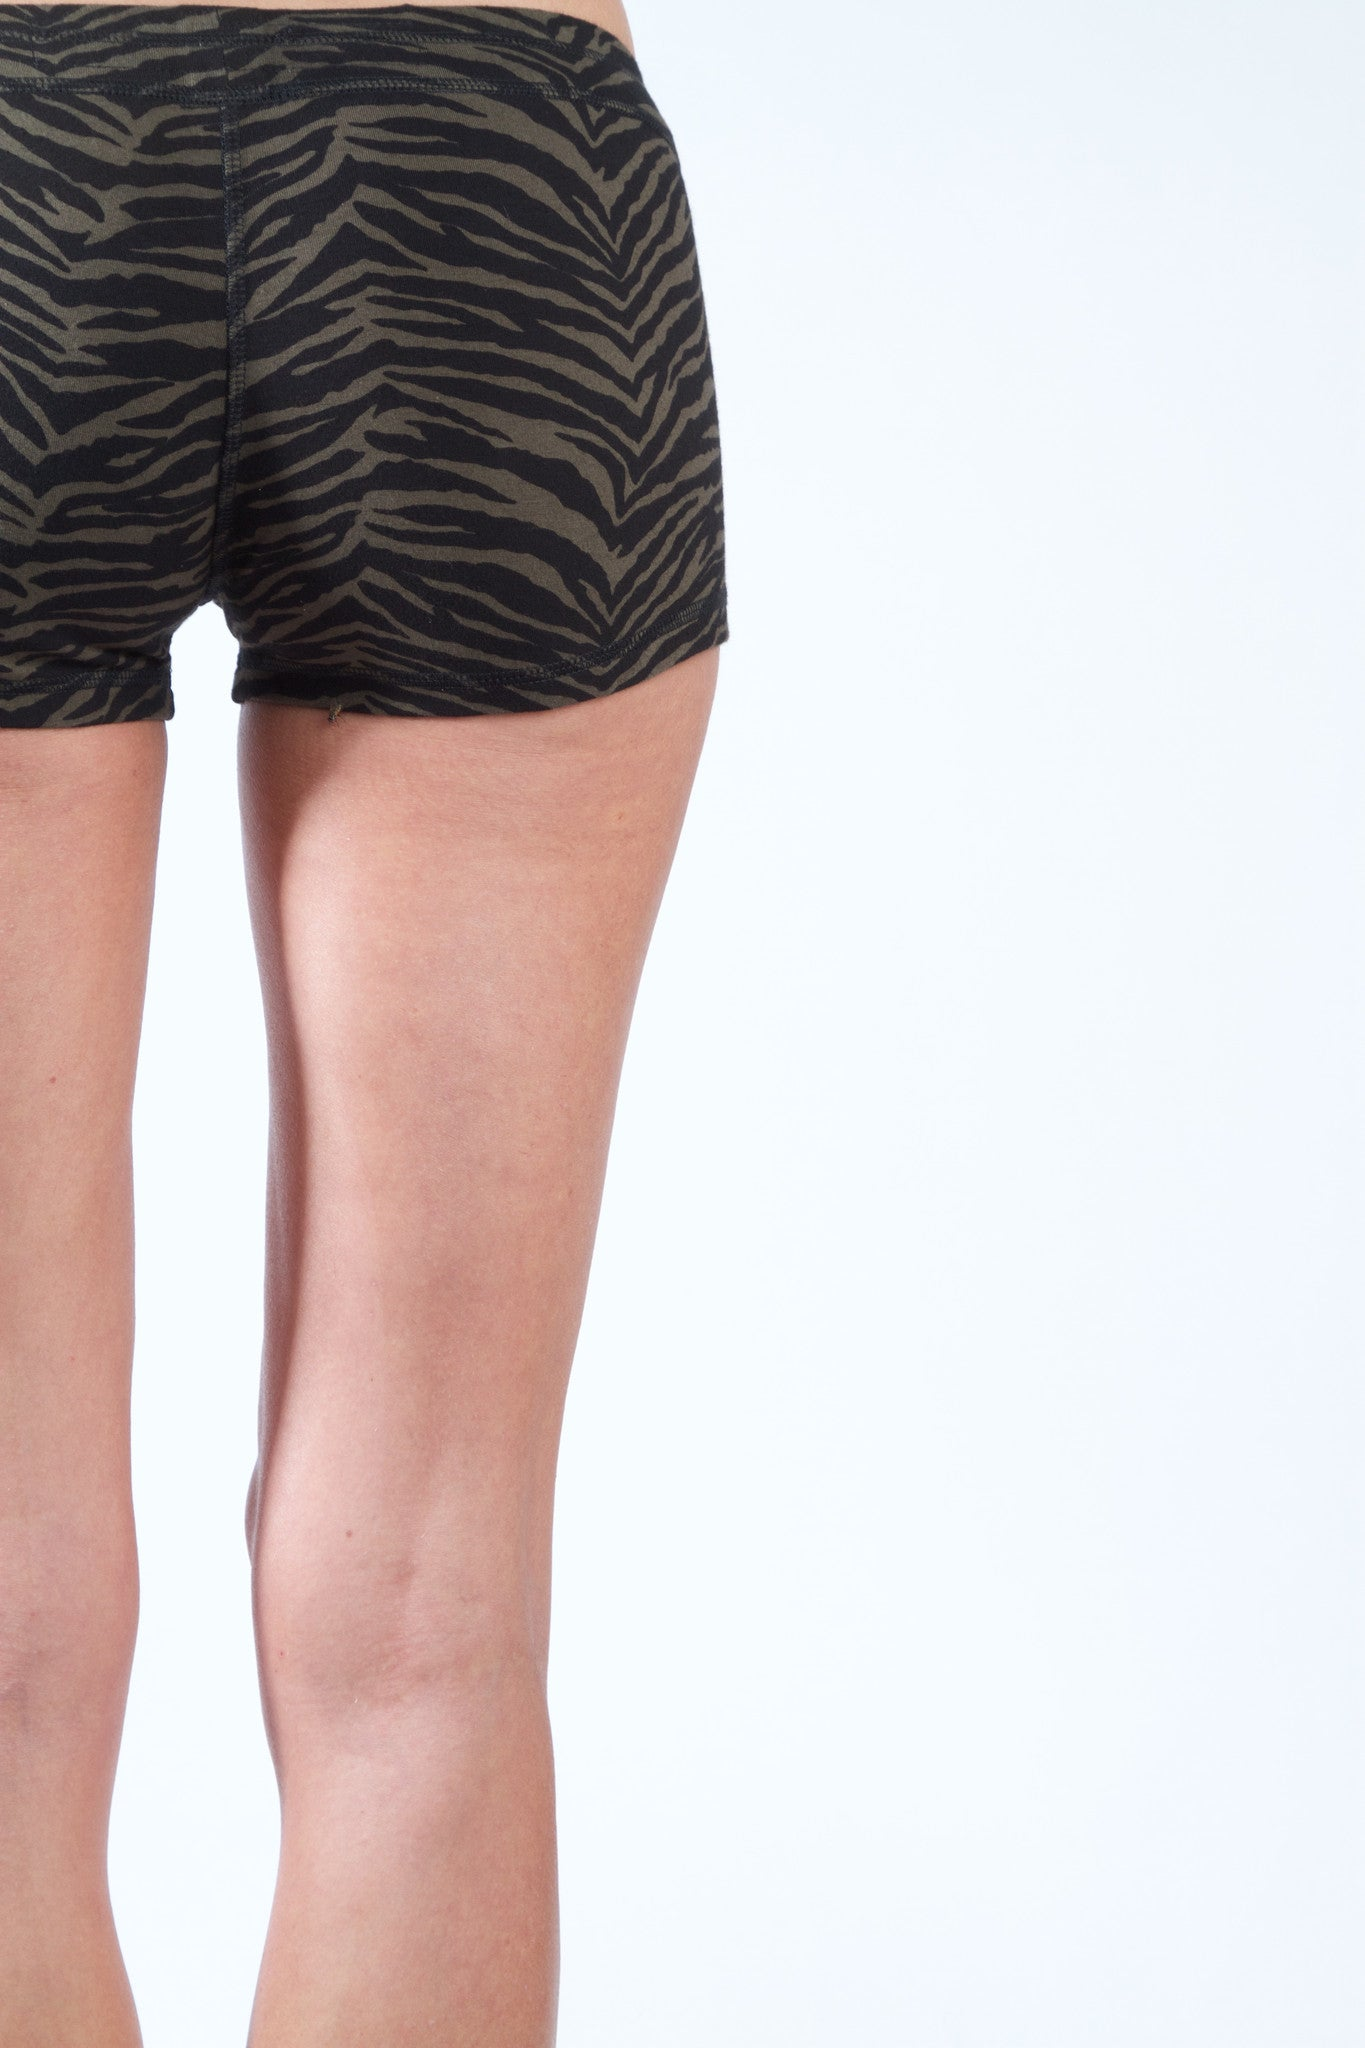 Low waist Hotpants - Olivegreen Black Zebra - Beach Shorts - FUNKY SIMPLICITY